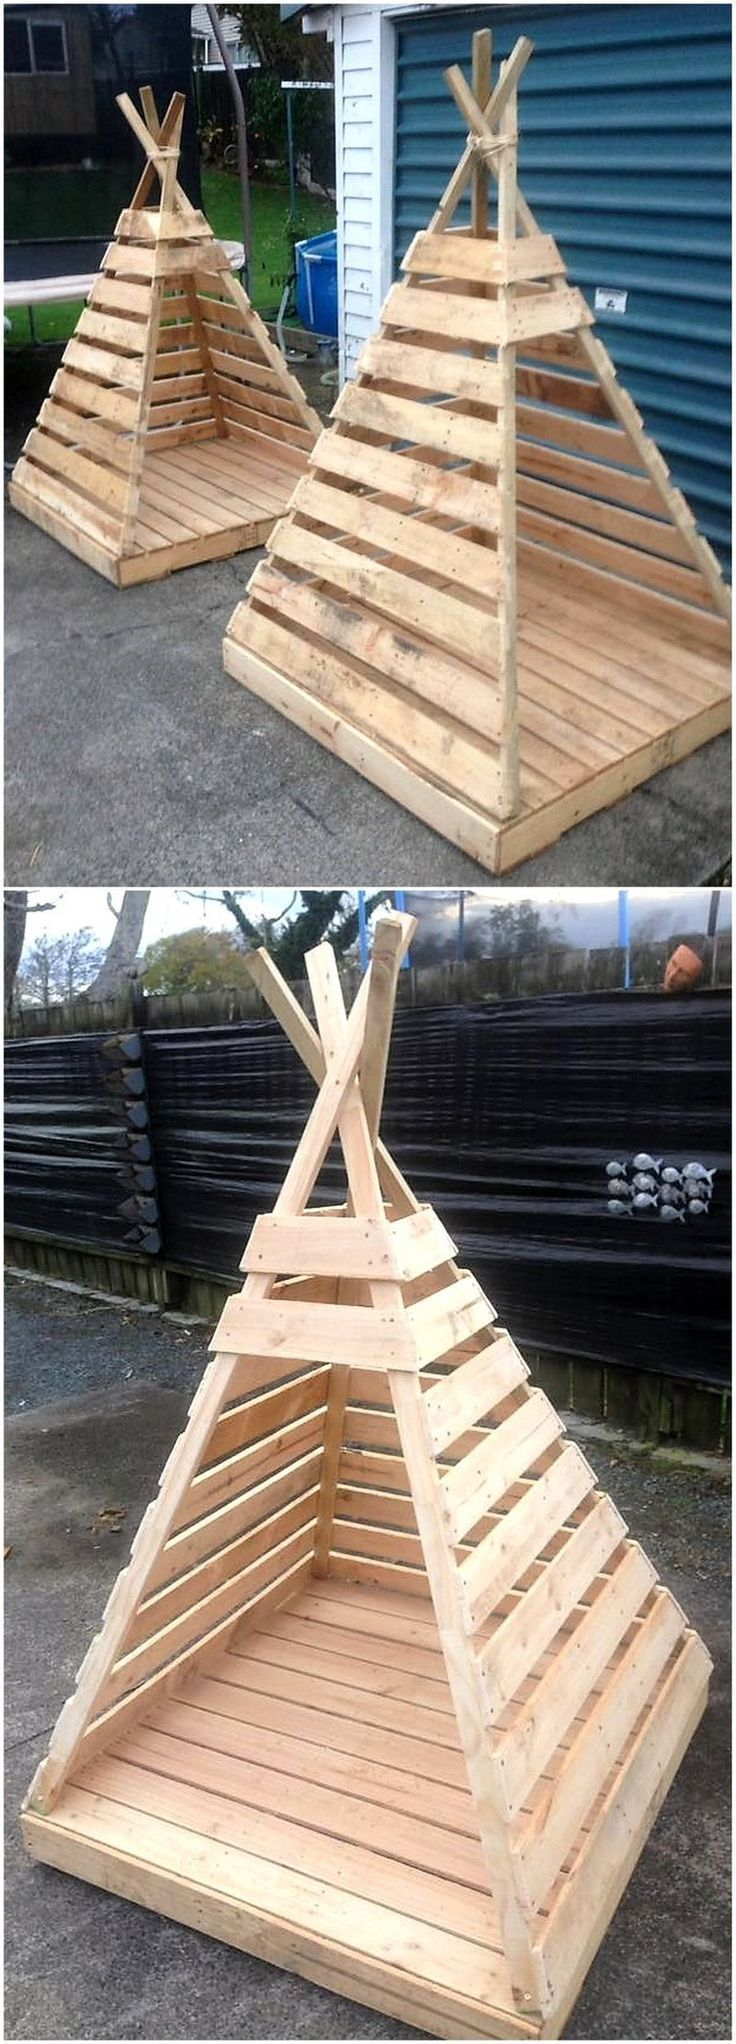 Paletten Kinderspielhaus #WoodWorking - My Blog #rusticwoodprojects